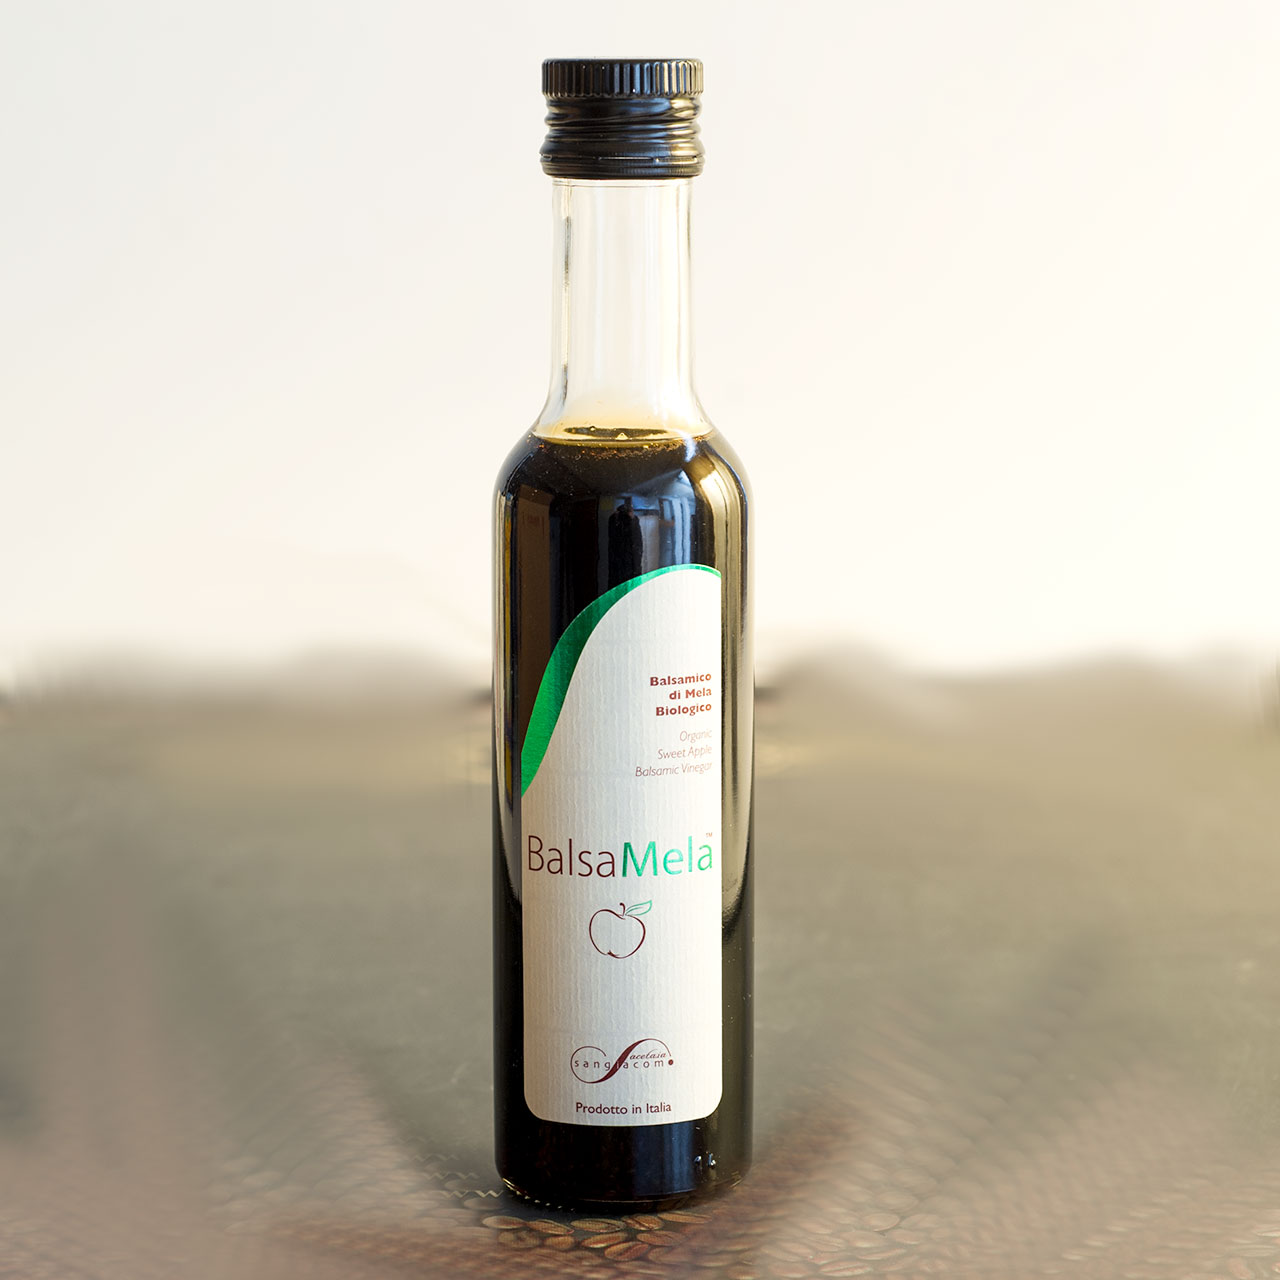 San Giacomo Balsa Mela (Apple Balsamic)